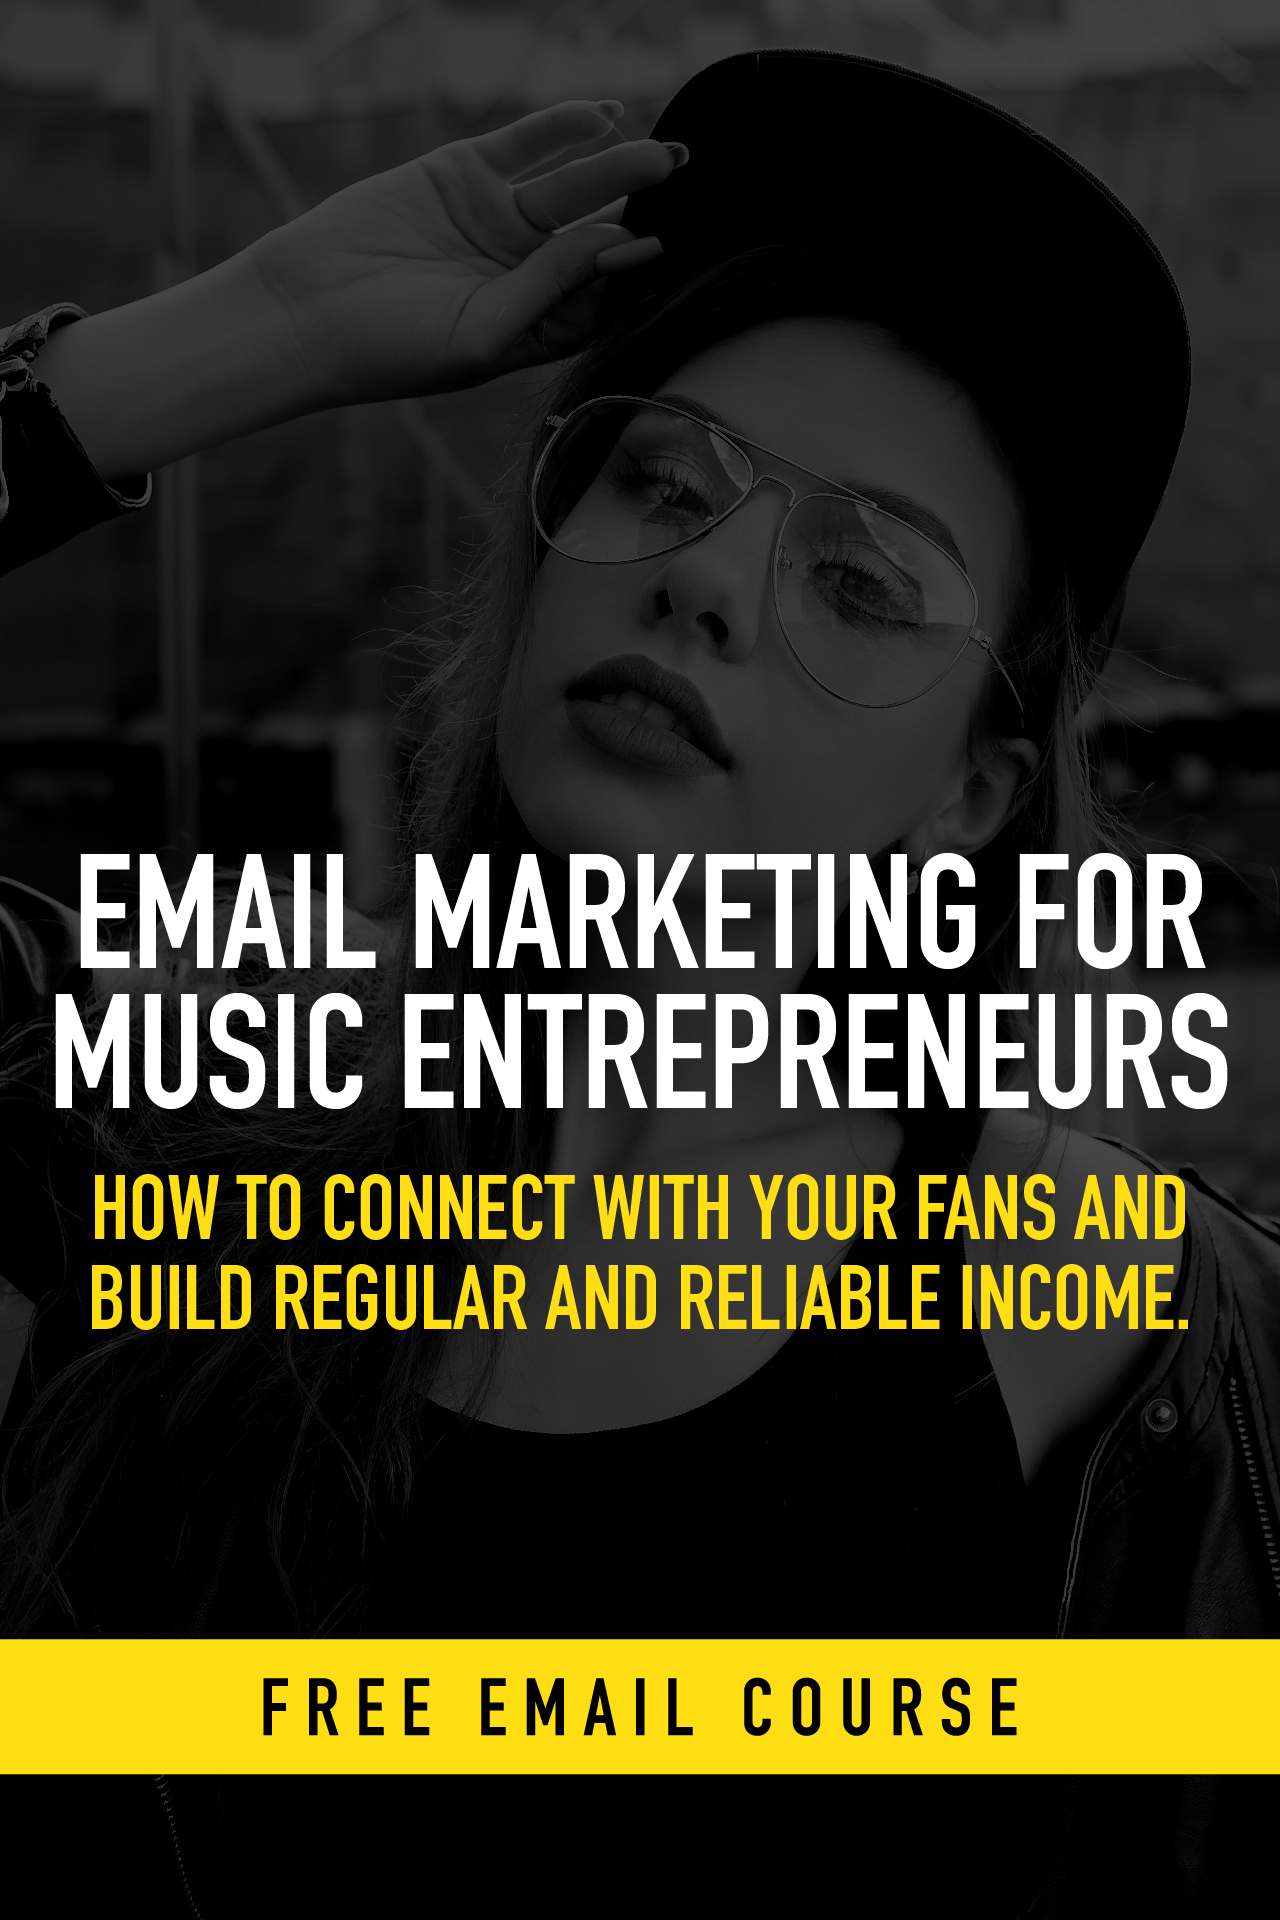 Free email course - Email Marketing for Music Entrepreneurs